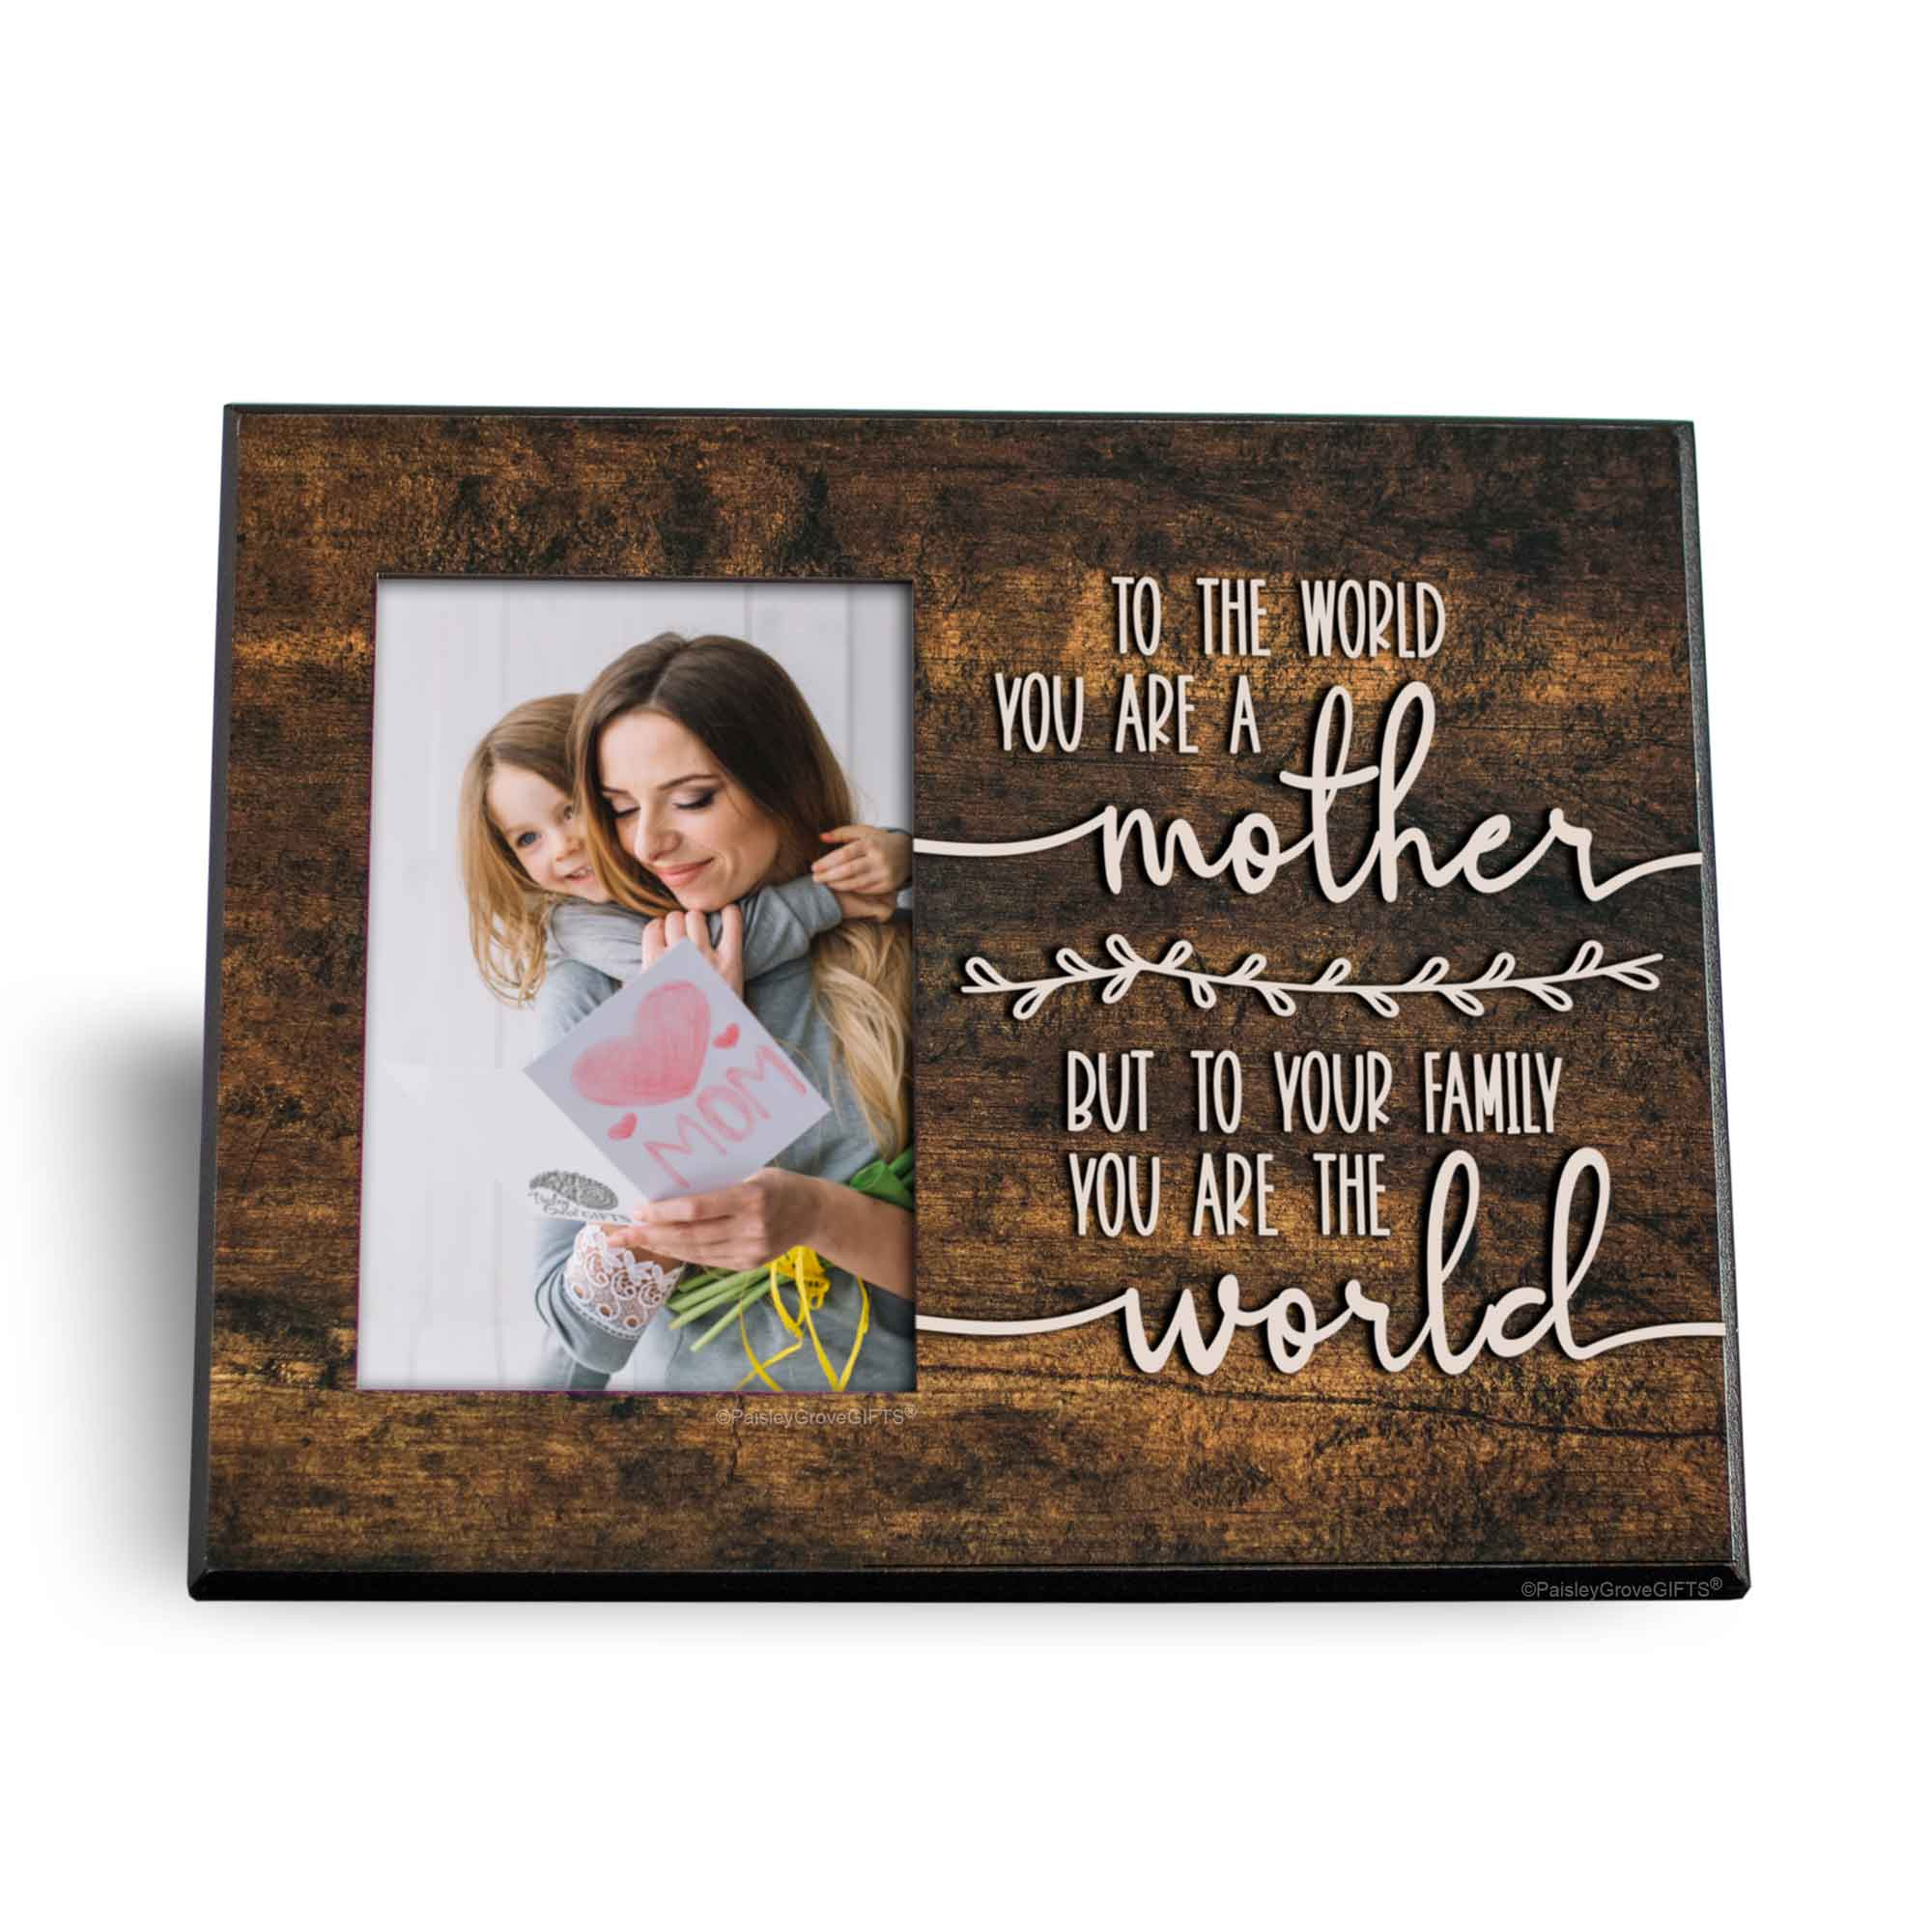 to the world you are a mother but to your family you are the world picture frame for mom from PaisleyGroveGIFTS.com